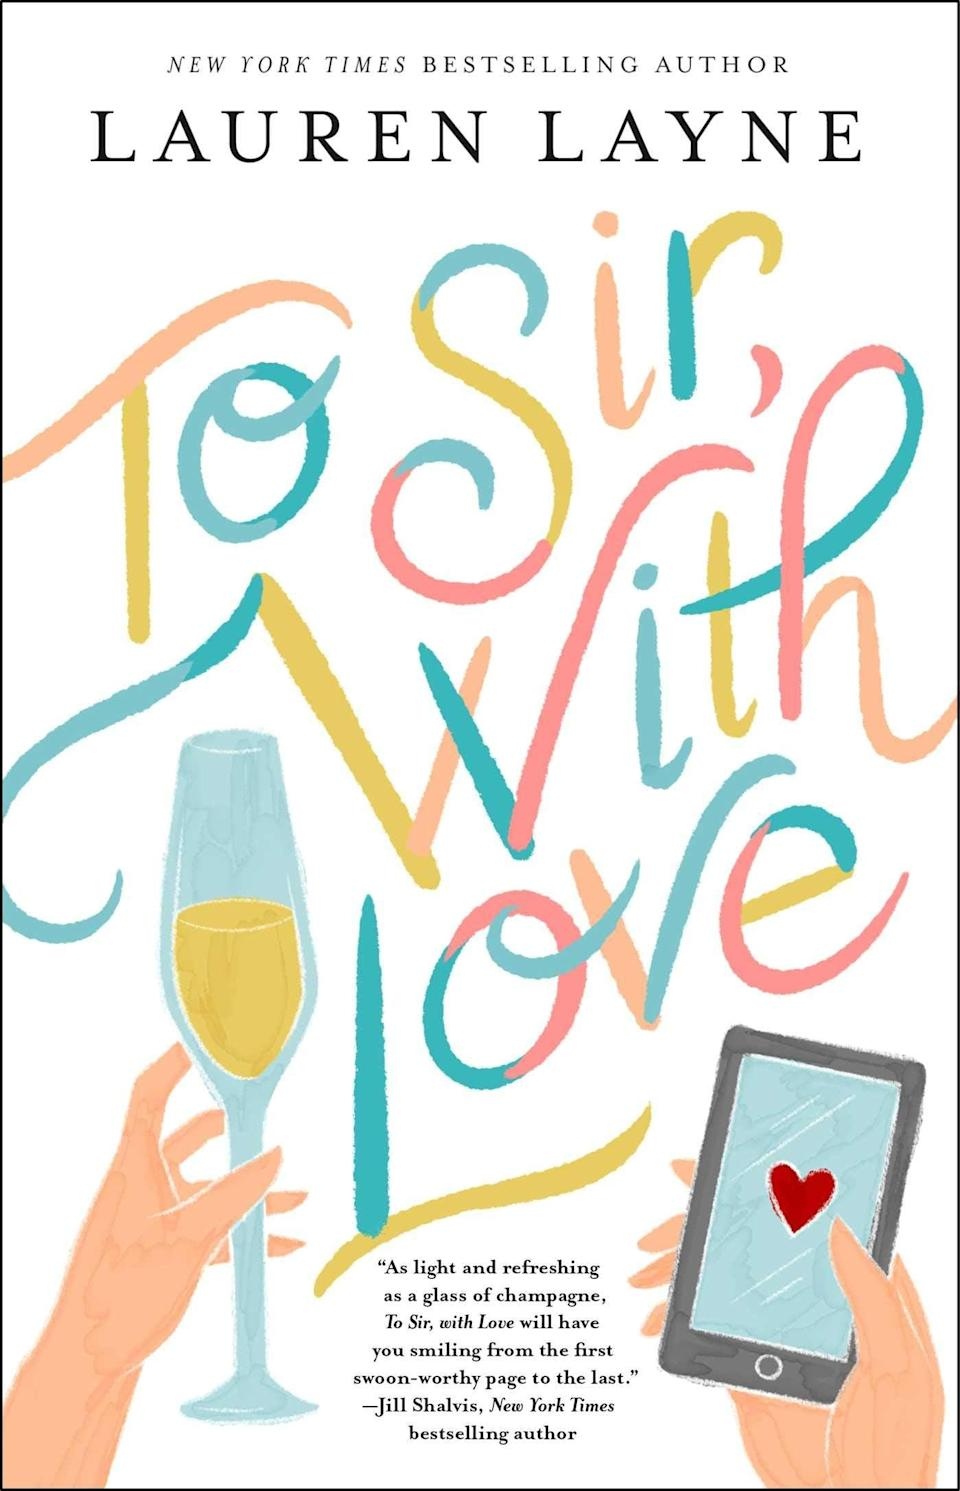 <p><span><strong>To Sir, With Love</strong></span> by Lauren Layne will give you <strong>You've Got Mail</strong> vibes in the best possible way. By day, Gracie is trying to keep her father's champagne shop afloat while avoiding the annoying Sebastian Andrews's attempts to buy her out. But by night, she's spilling all of her problems to a man known only as Sir, who she meets on a blind dating app. What she doesn't know, is she has already met Sir in real life, and it was loathe at first sight. </p> <p><em>Out June 29</em></p>